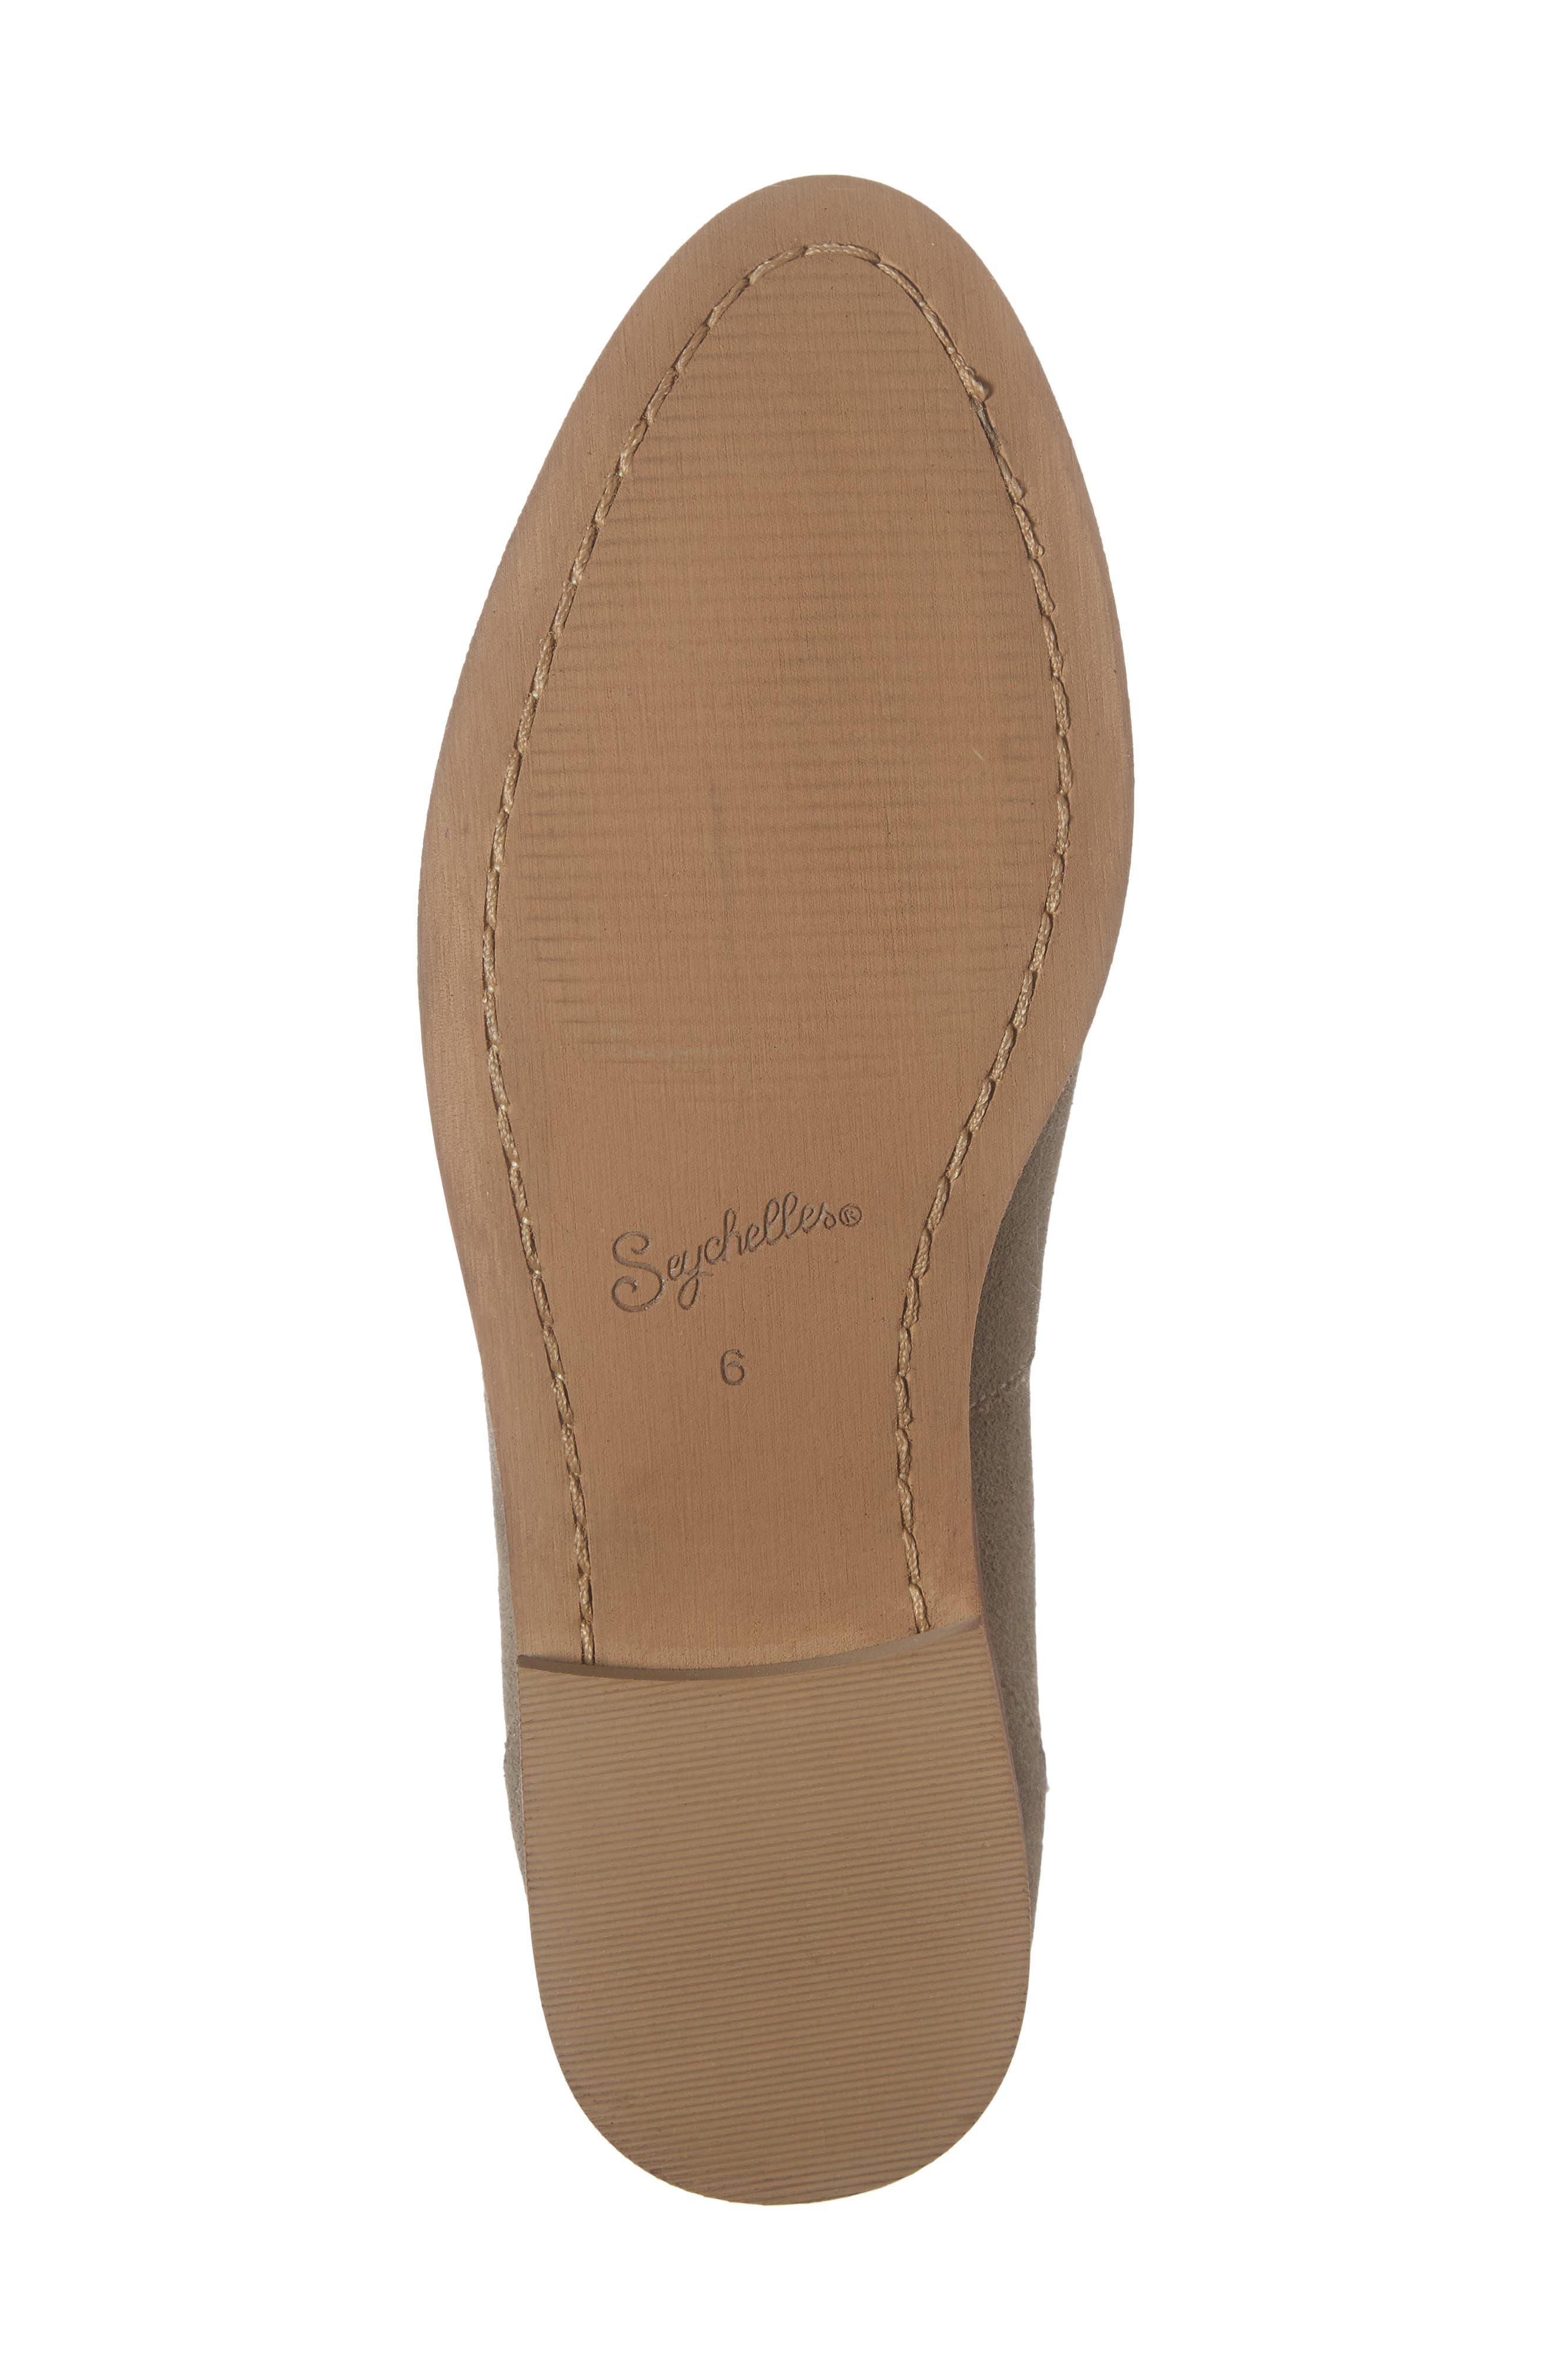 Revolution Loafer,                             Alternate thumbnail 6, color,                             TAUPE SUEDE